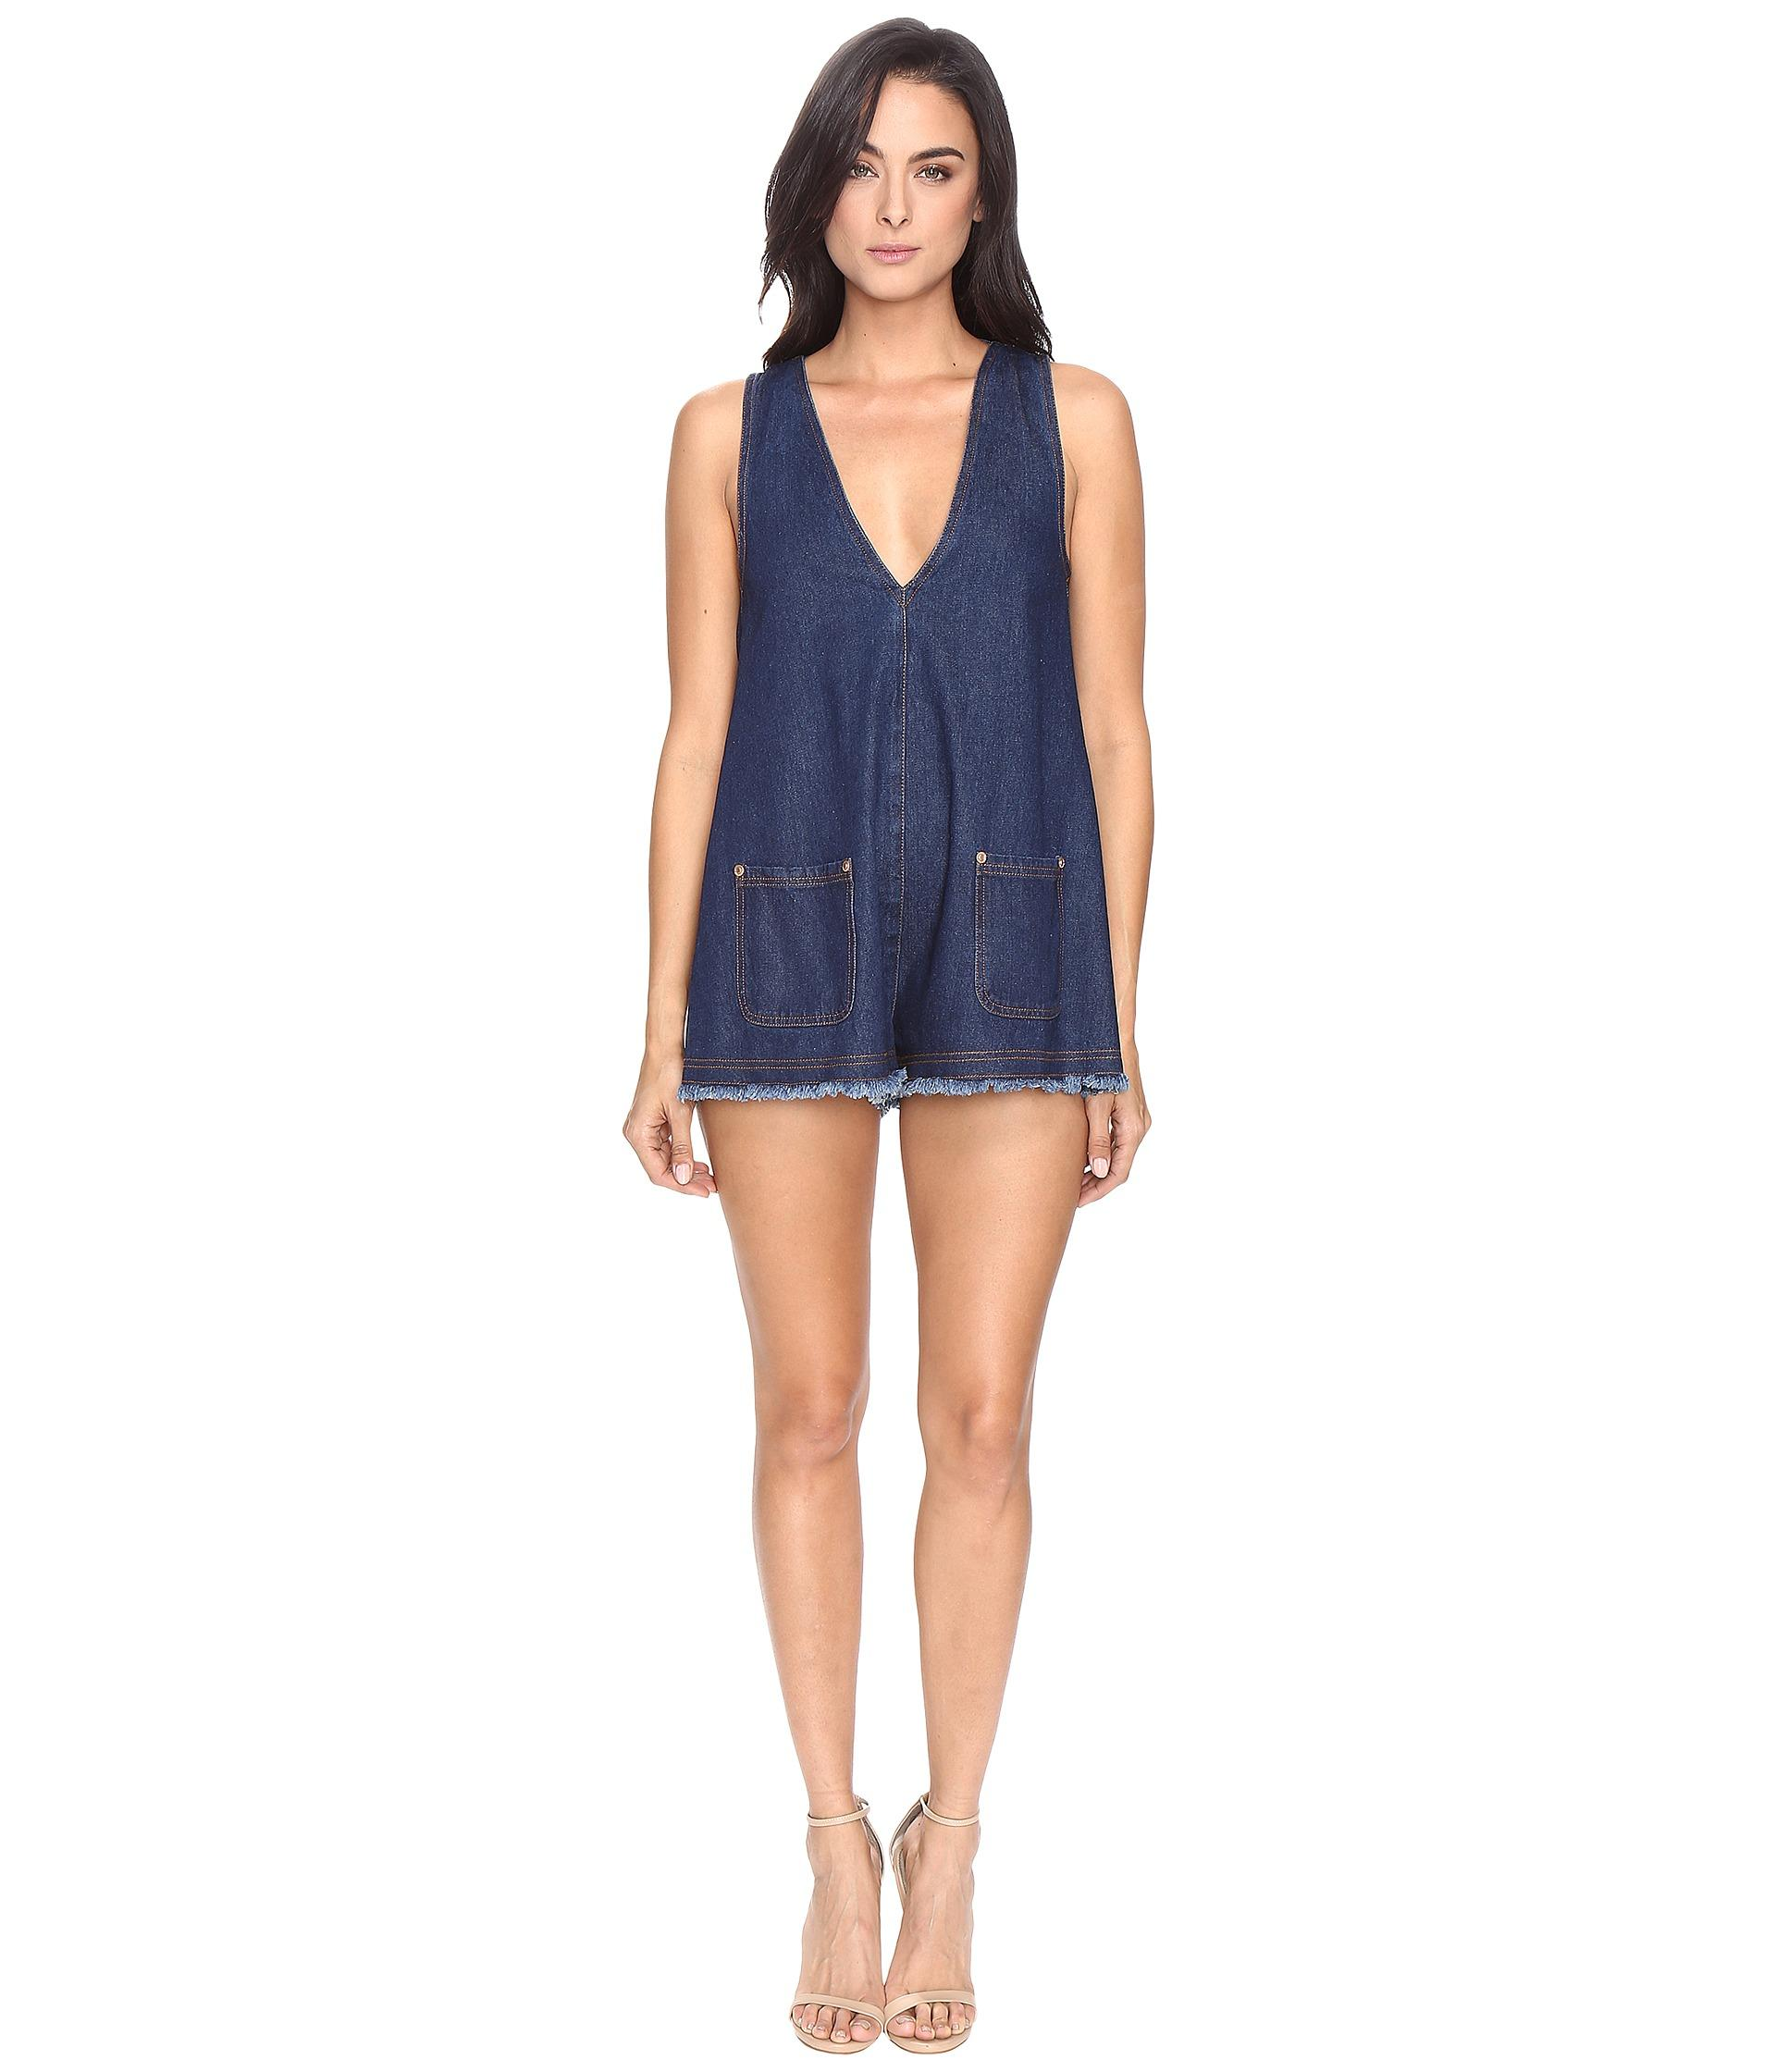 0ad1b7c6368d Lyst - Alice McCALL S.o.s Playsuit in Blue